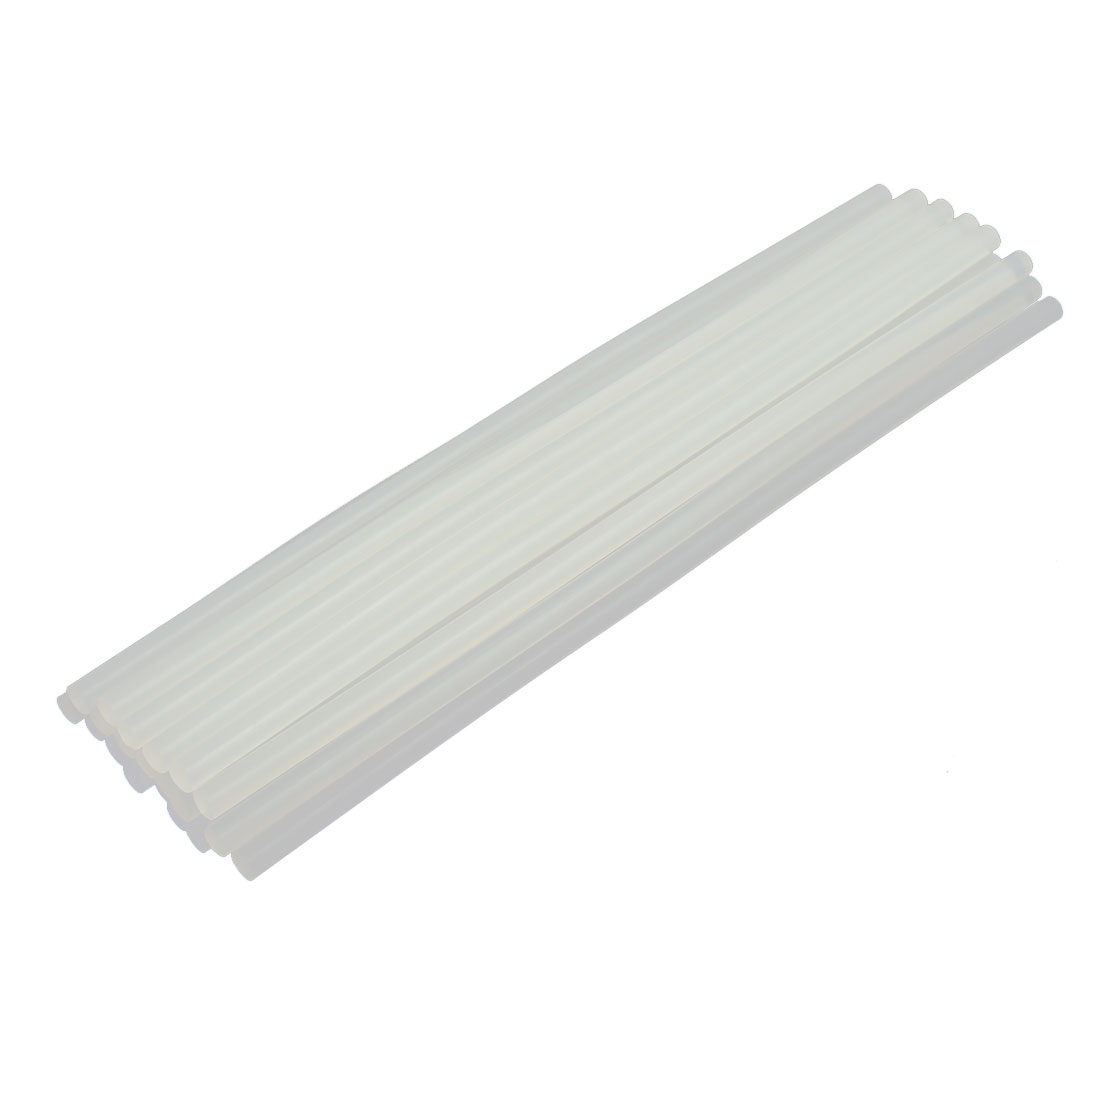 20Pcs 270x7mm Clear Hot Melt Glue Adhesive Stick for for Craft Heating Glue Gun - image 3 of 3